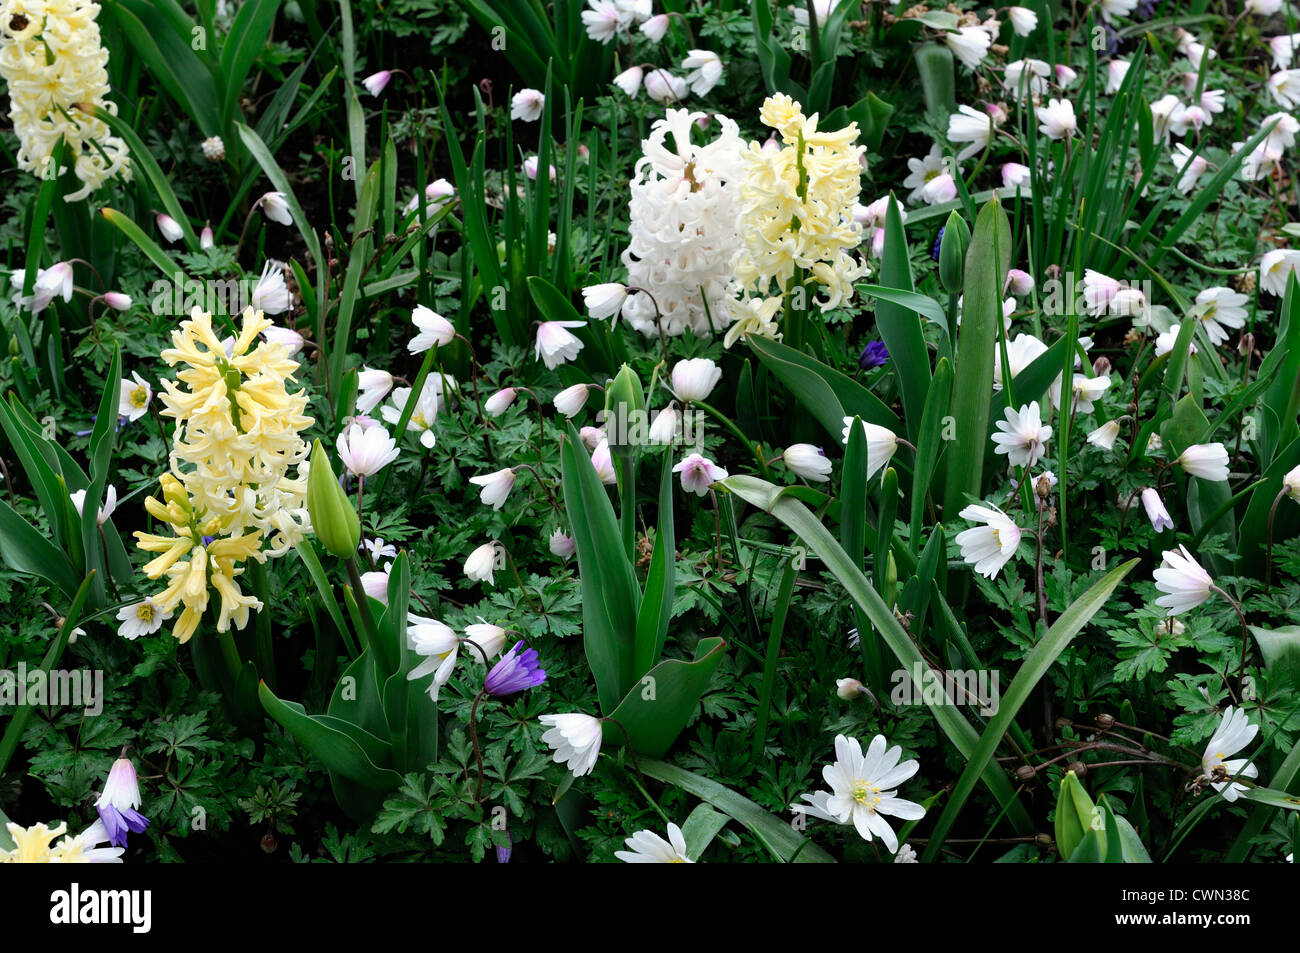 Mixed bed border spring blooming bulbs yellow white color colour combo combination mix mixed planting display scheme - Stock Image